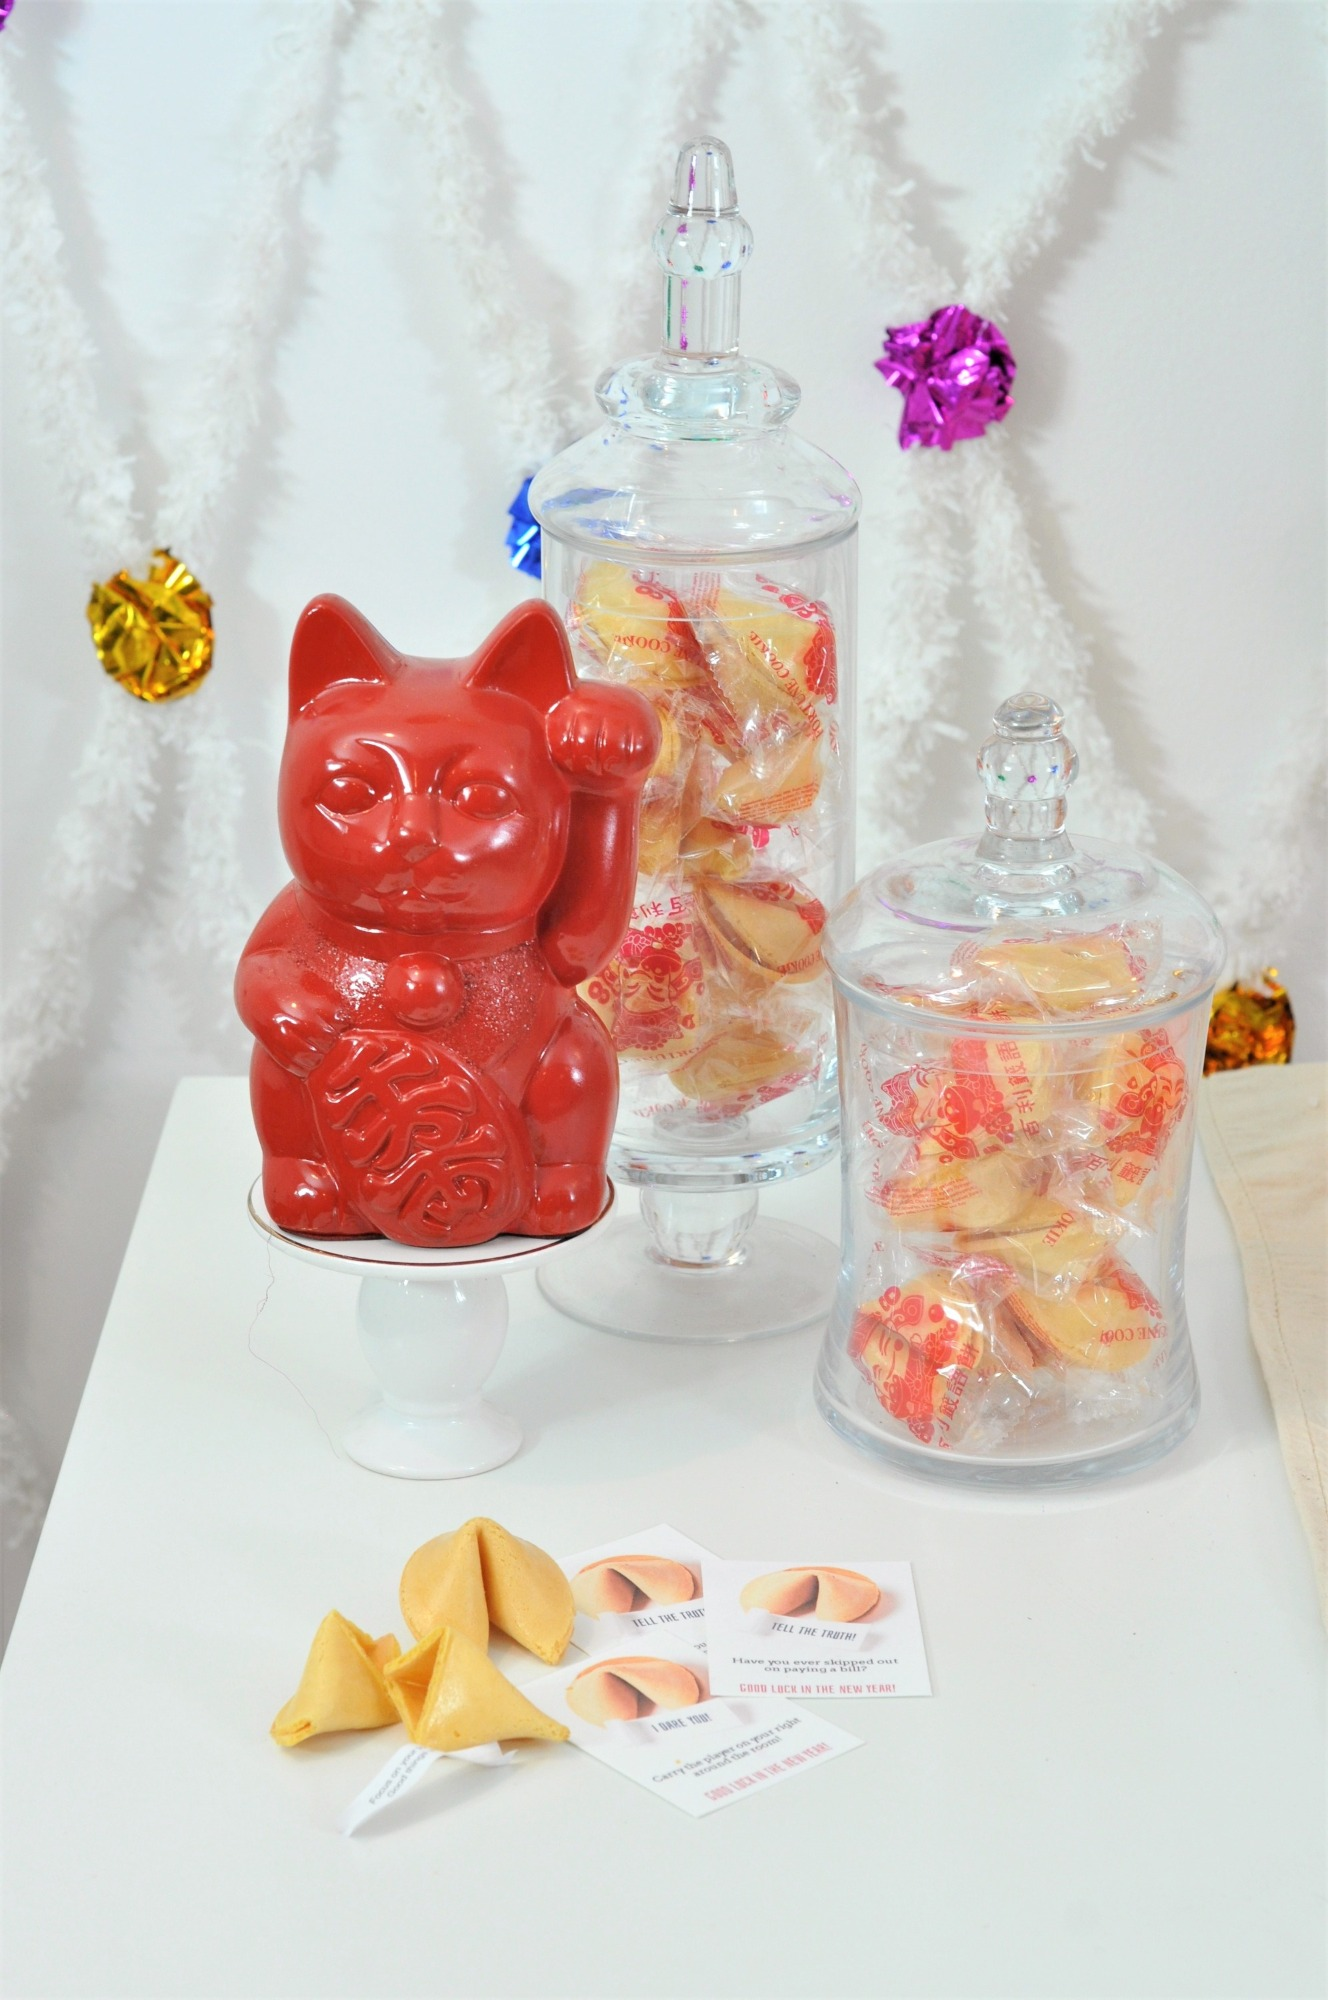 Fortune Cookies from Lucky Cat Chinese New Year Party by Fern & Maple   Black Twine